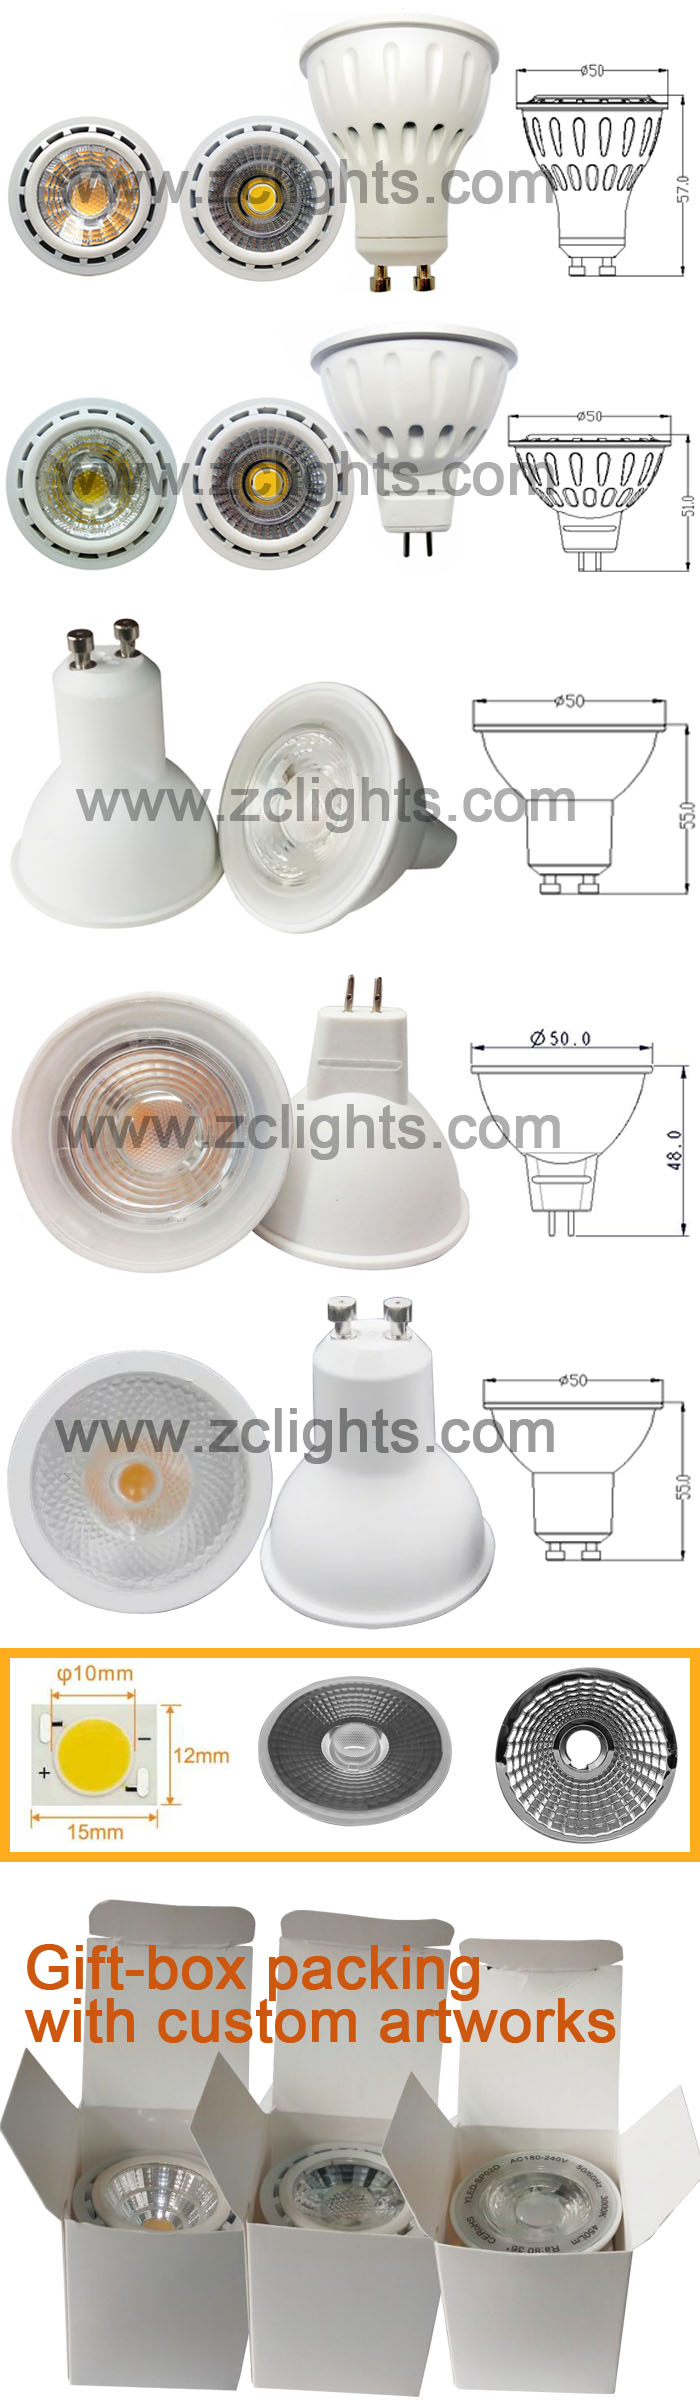 MR16 LED Lamp 6W LED Lamp LED Spot Light (MR16-A6)